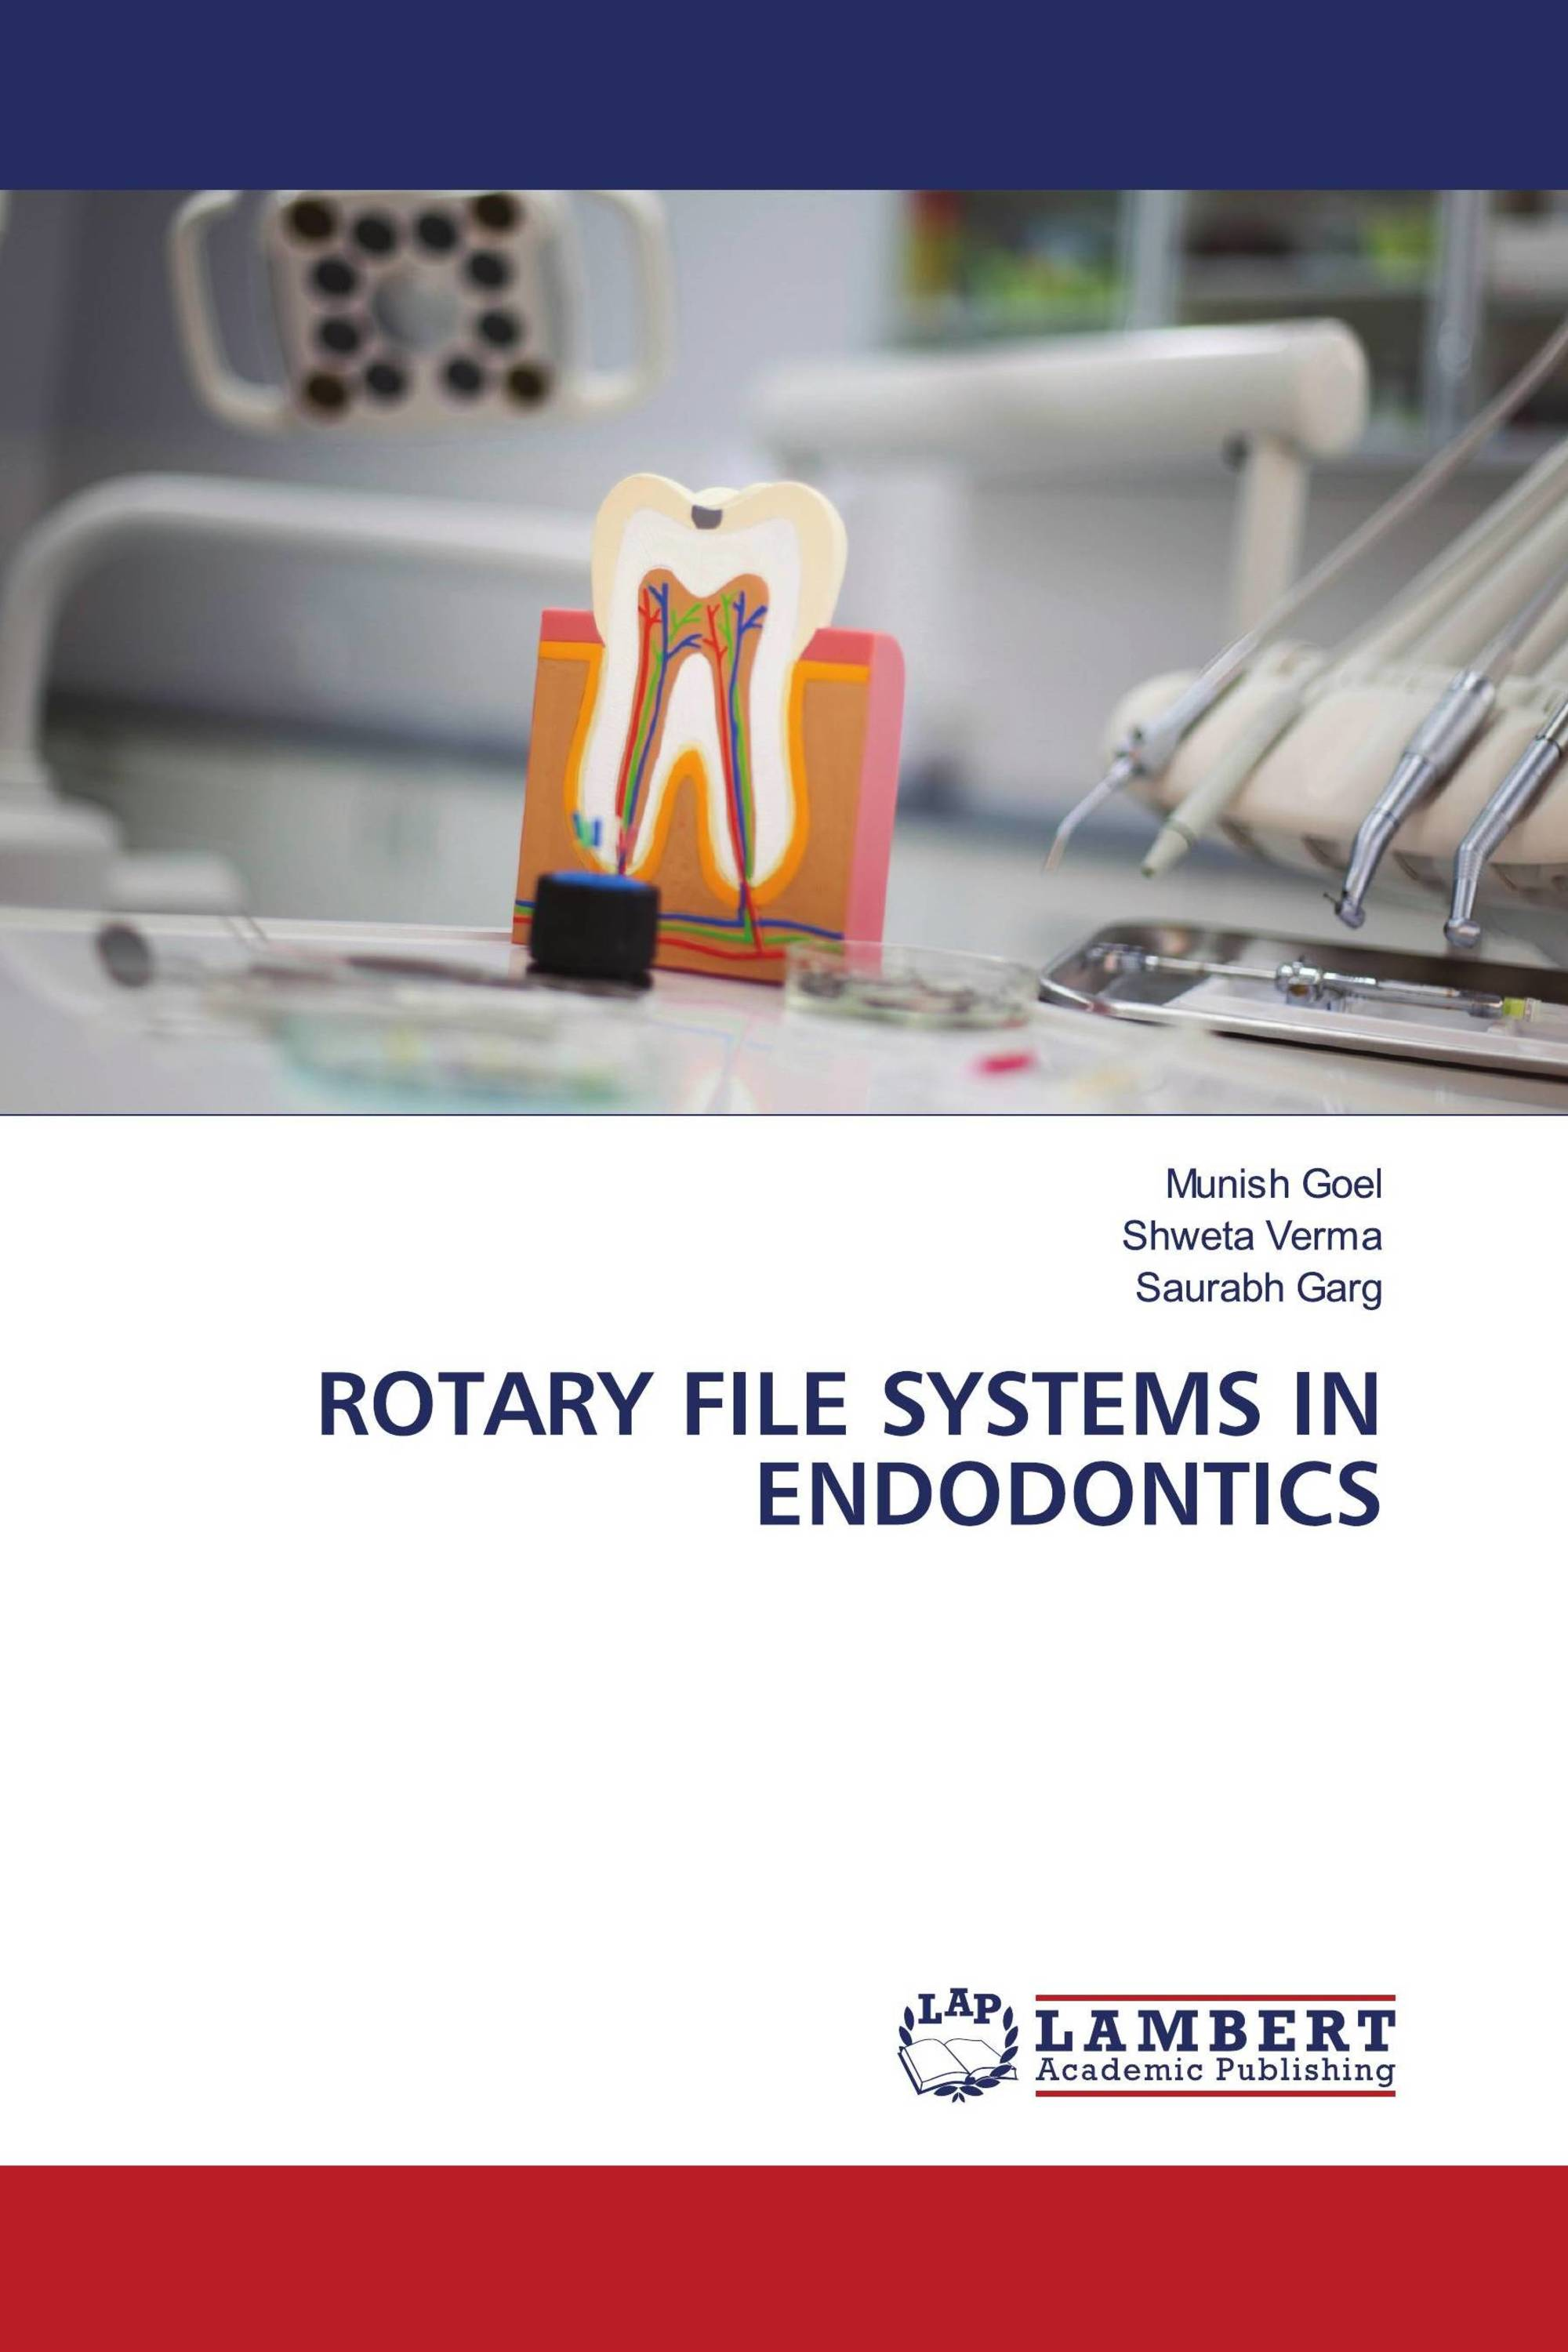 ROTARY FILE SYSTEMS IN ENDODONTICS